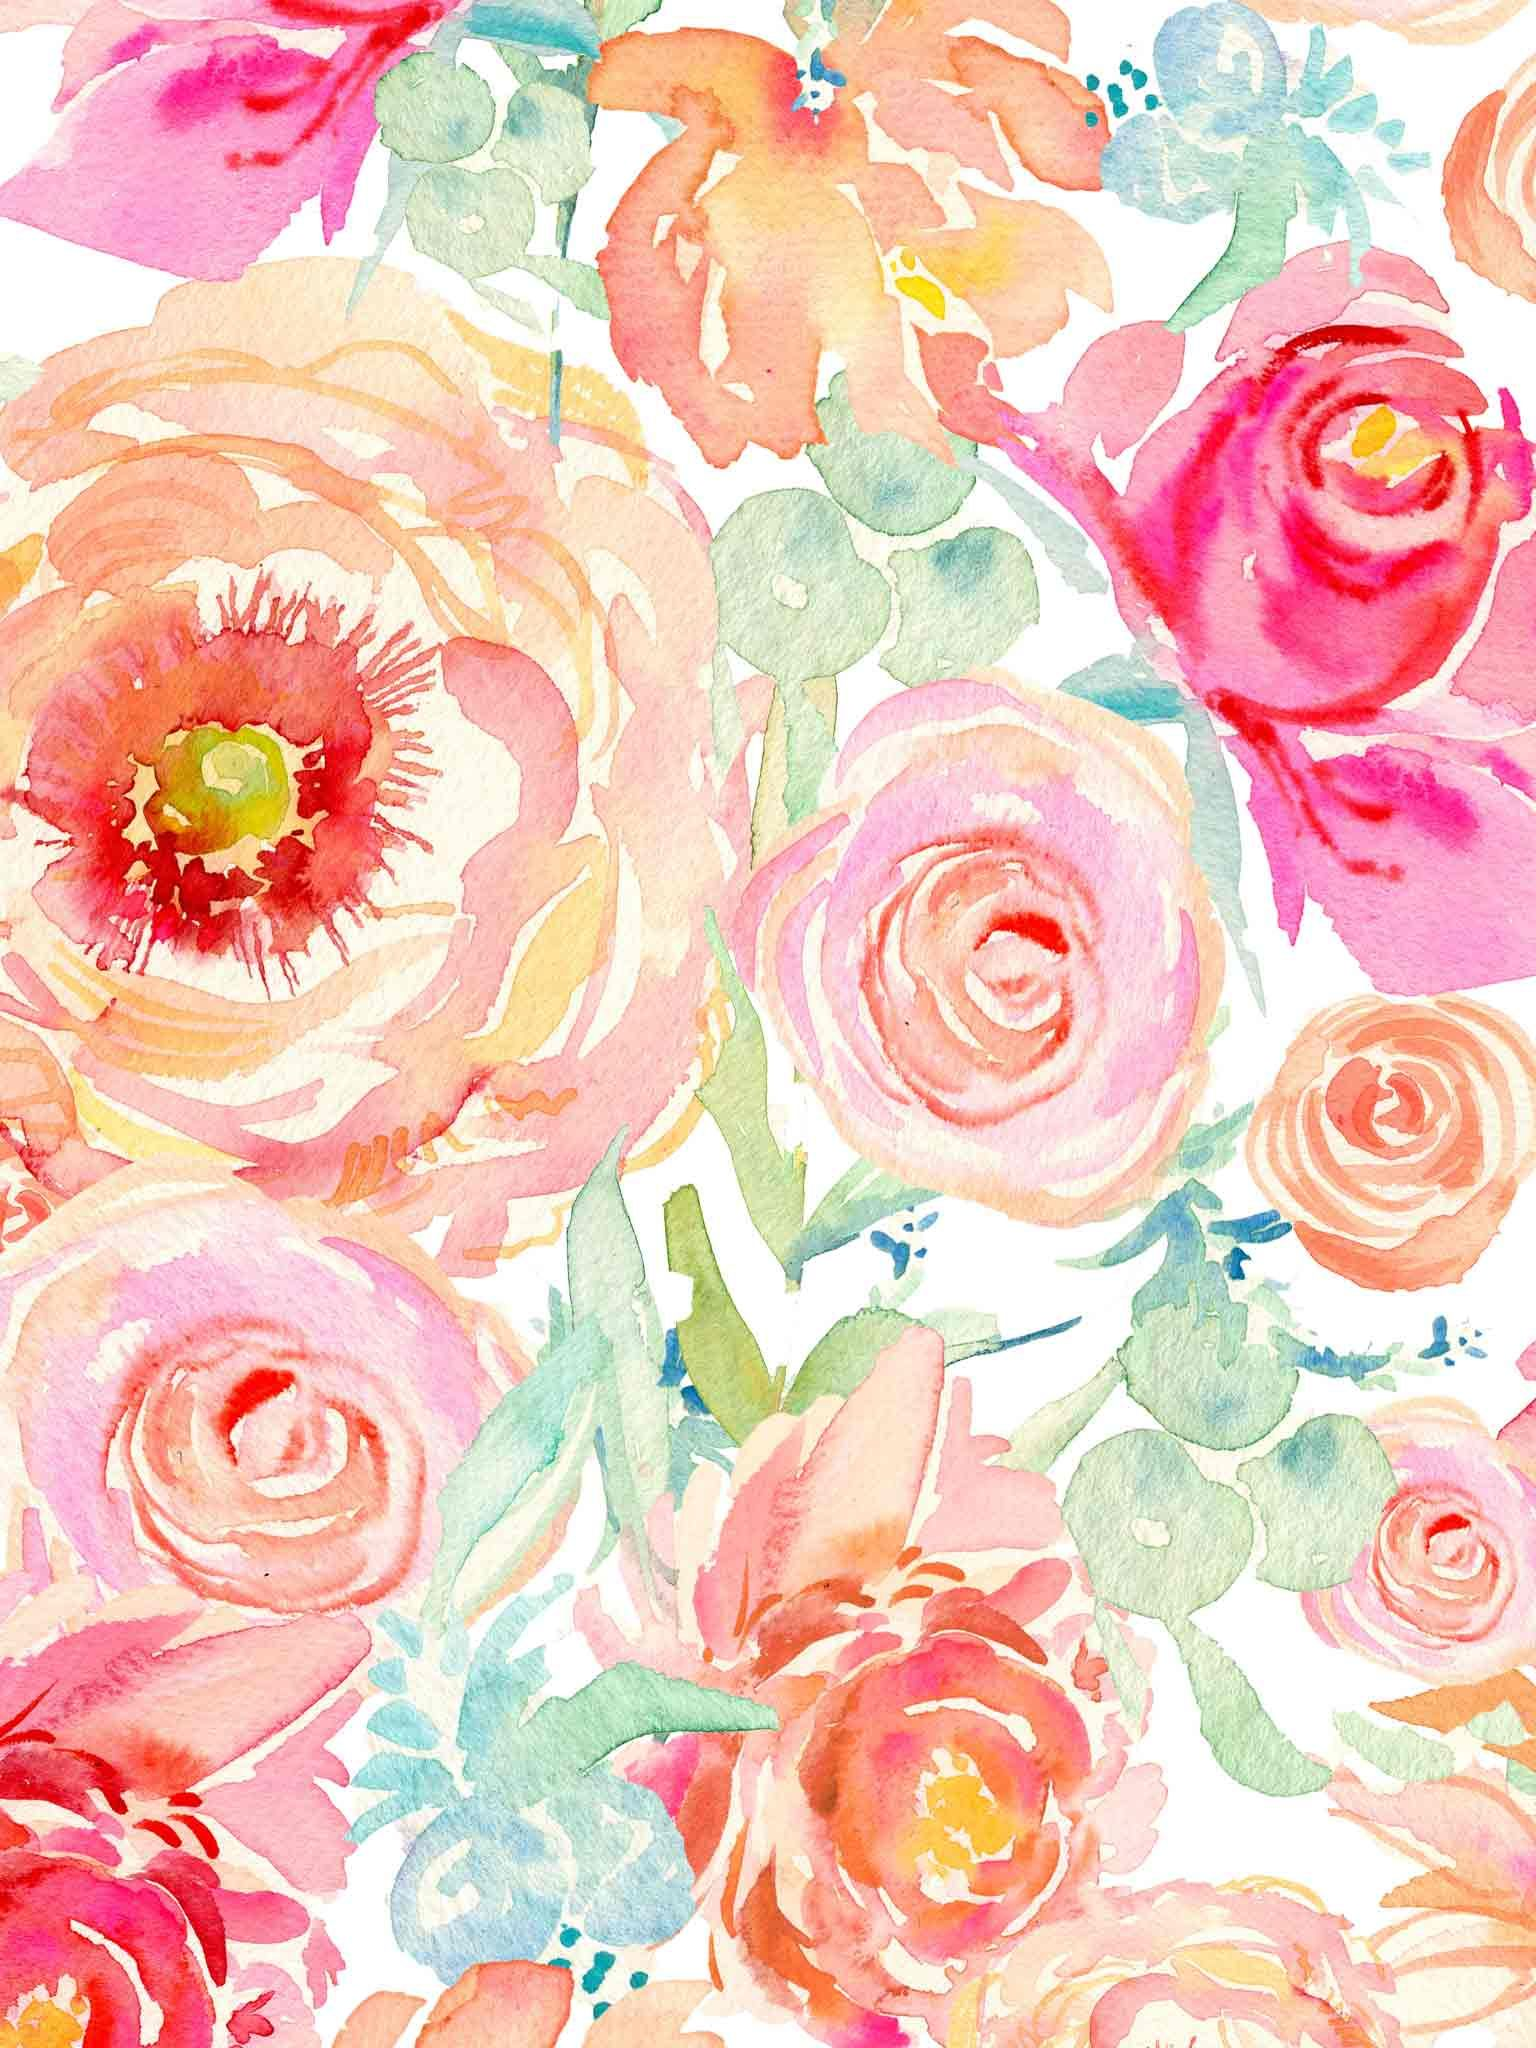 1536x2048 floral watercolor wallpaper - Google Search | Cakes ...